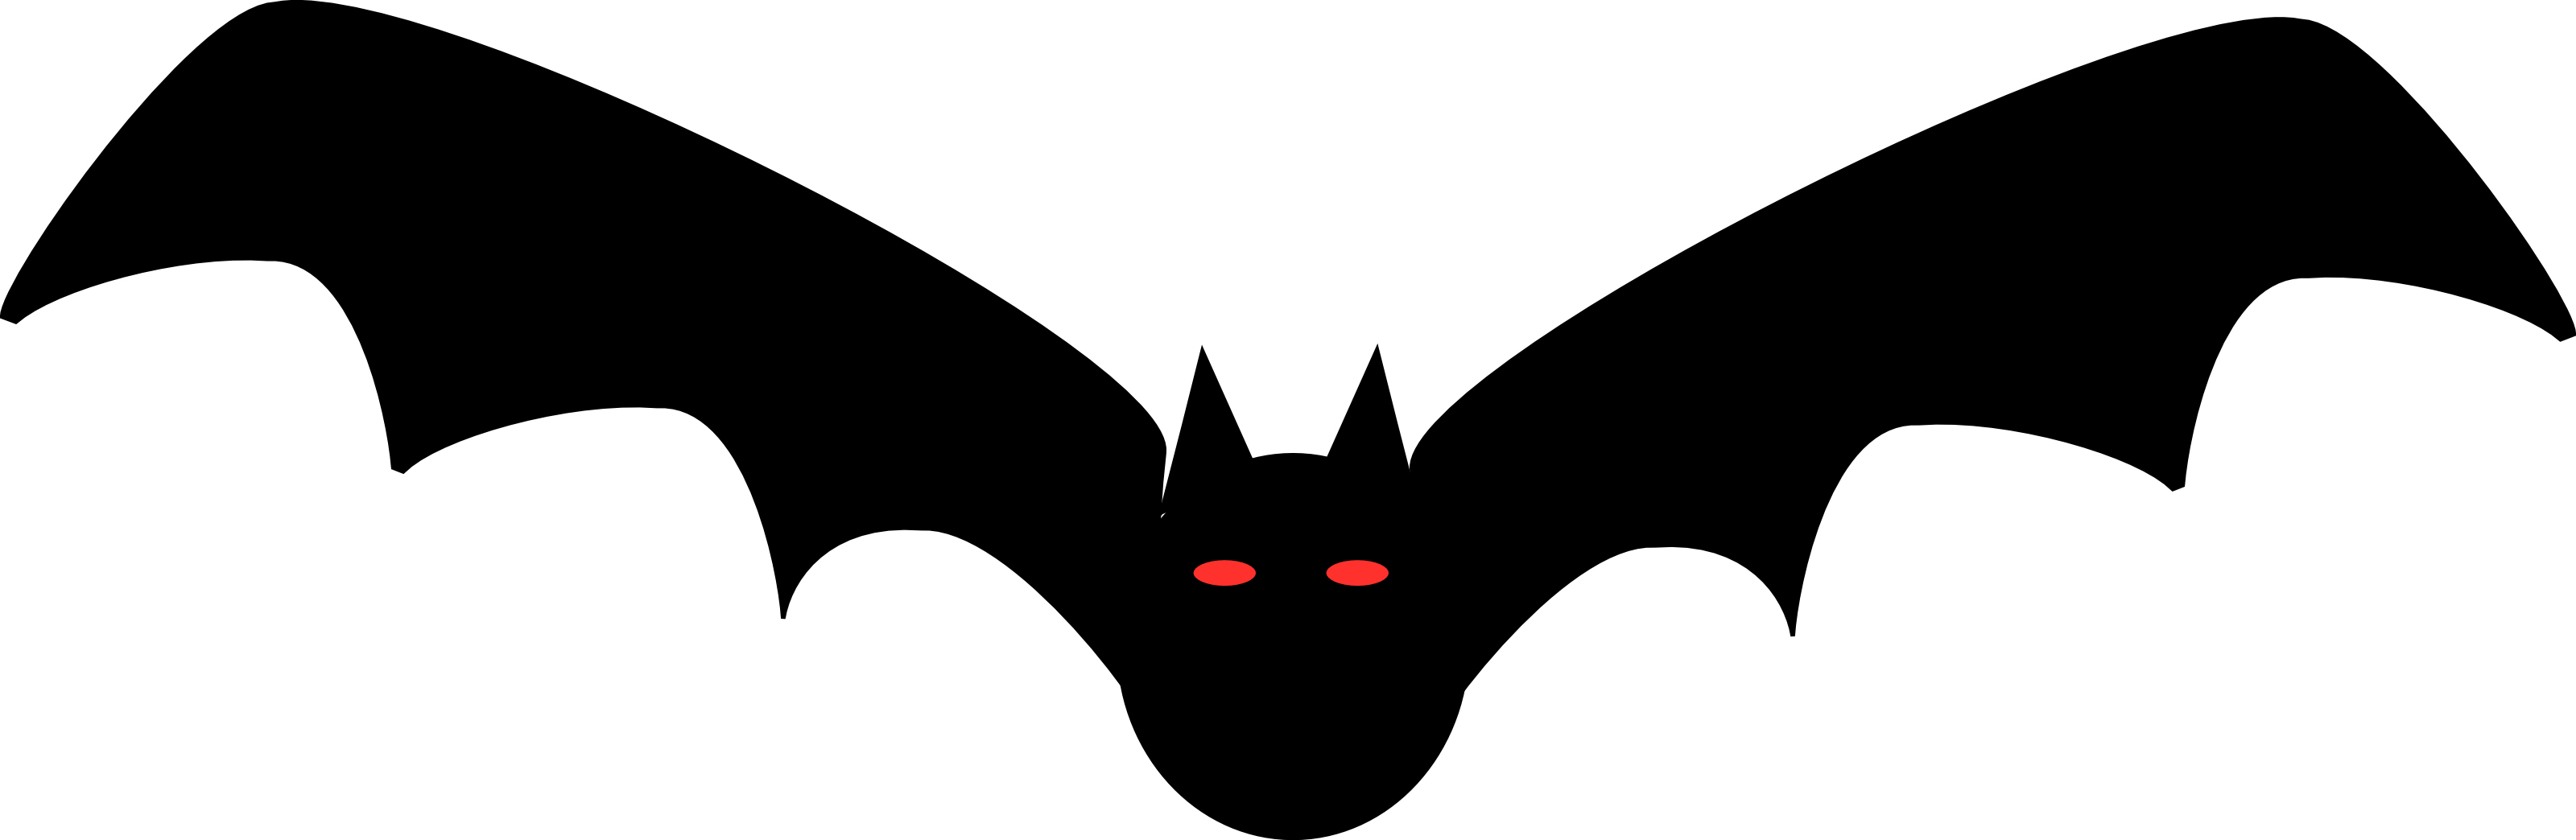 silhouette halloween images at getdrawings com free for personal rh getdrawings com  halloween bat clipart black and white